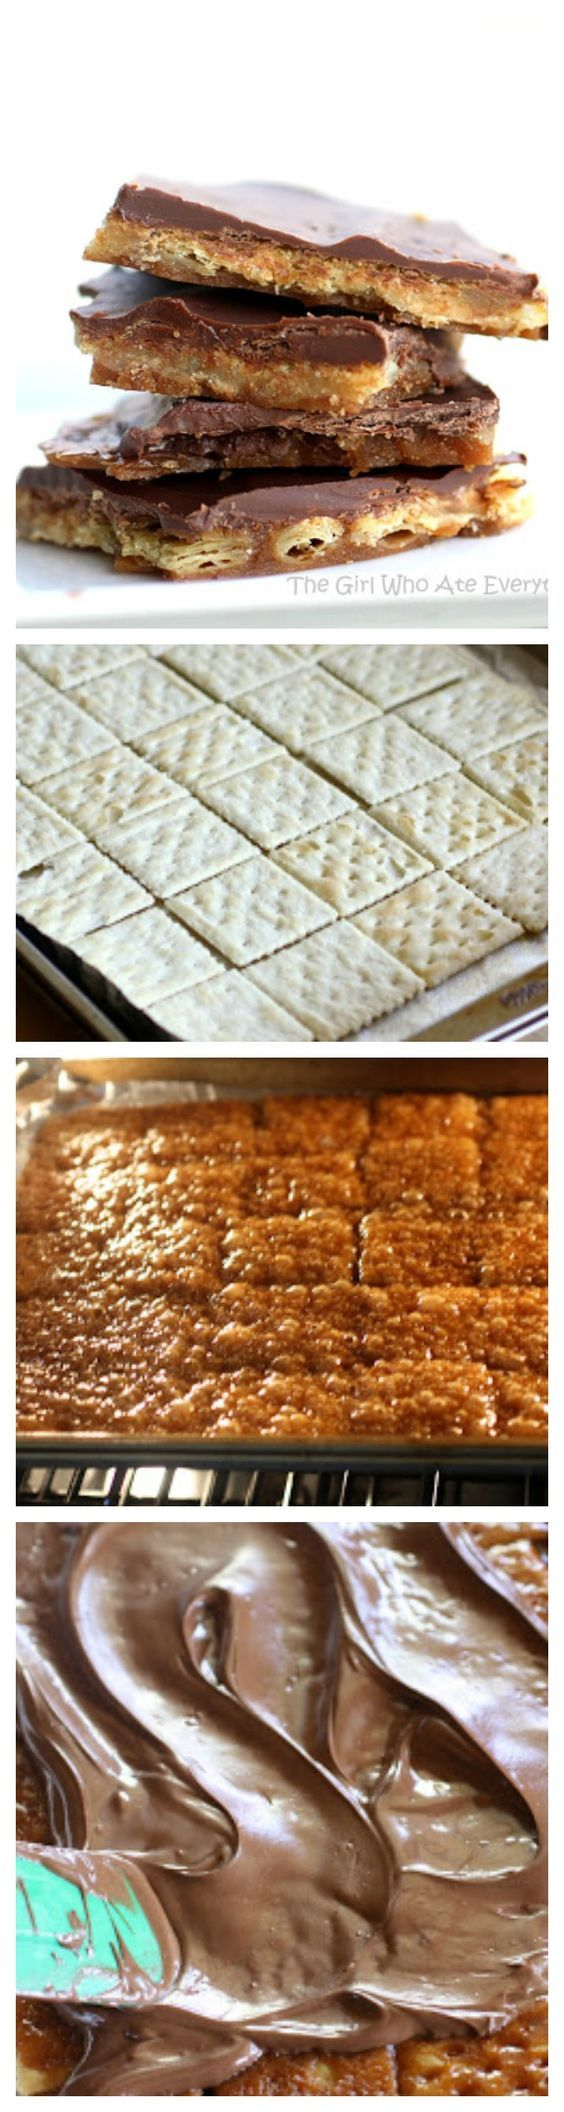 Saltine Cracker Toffee - a tried and true recipe my grandma used to make. Easy and so addicting. the-girl-who-ate-everything.com: